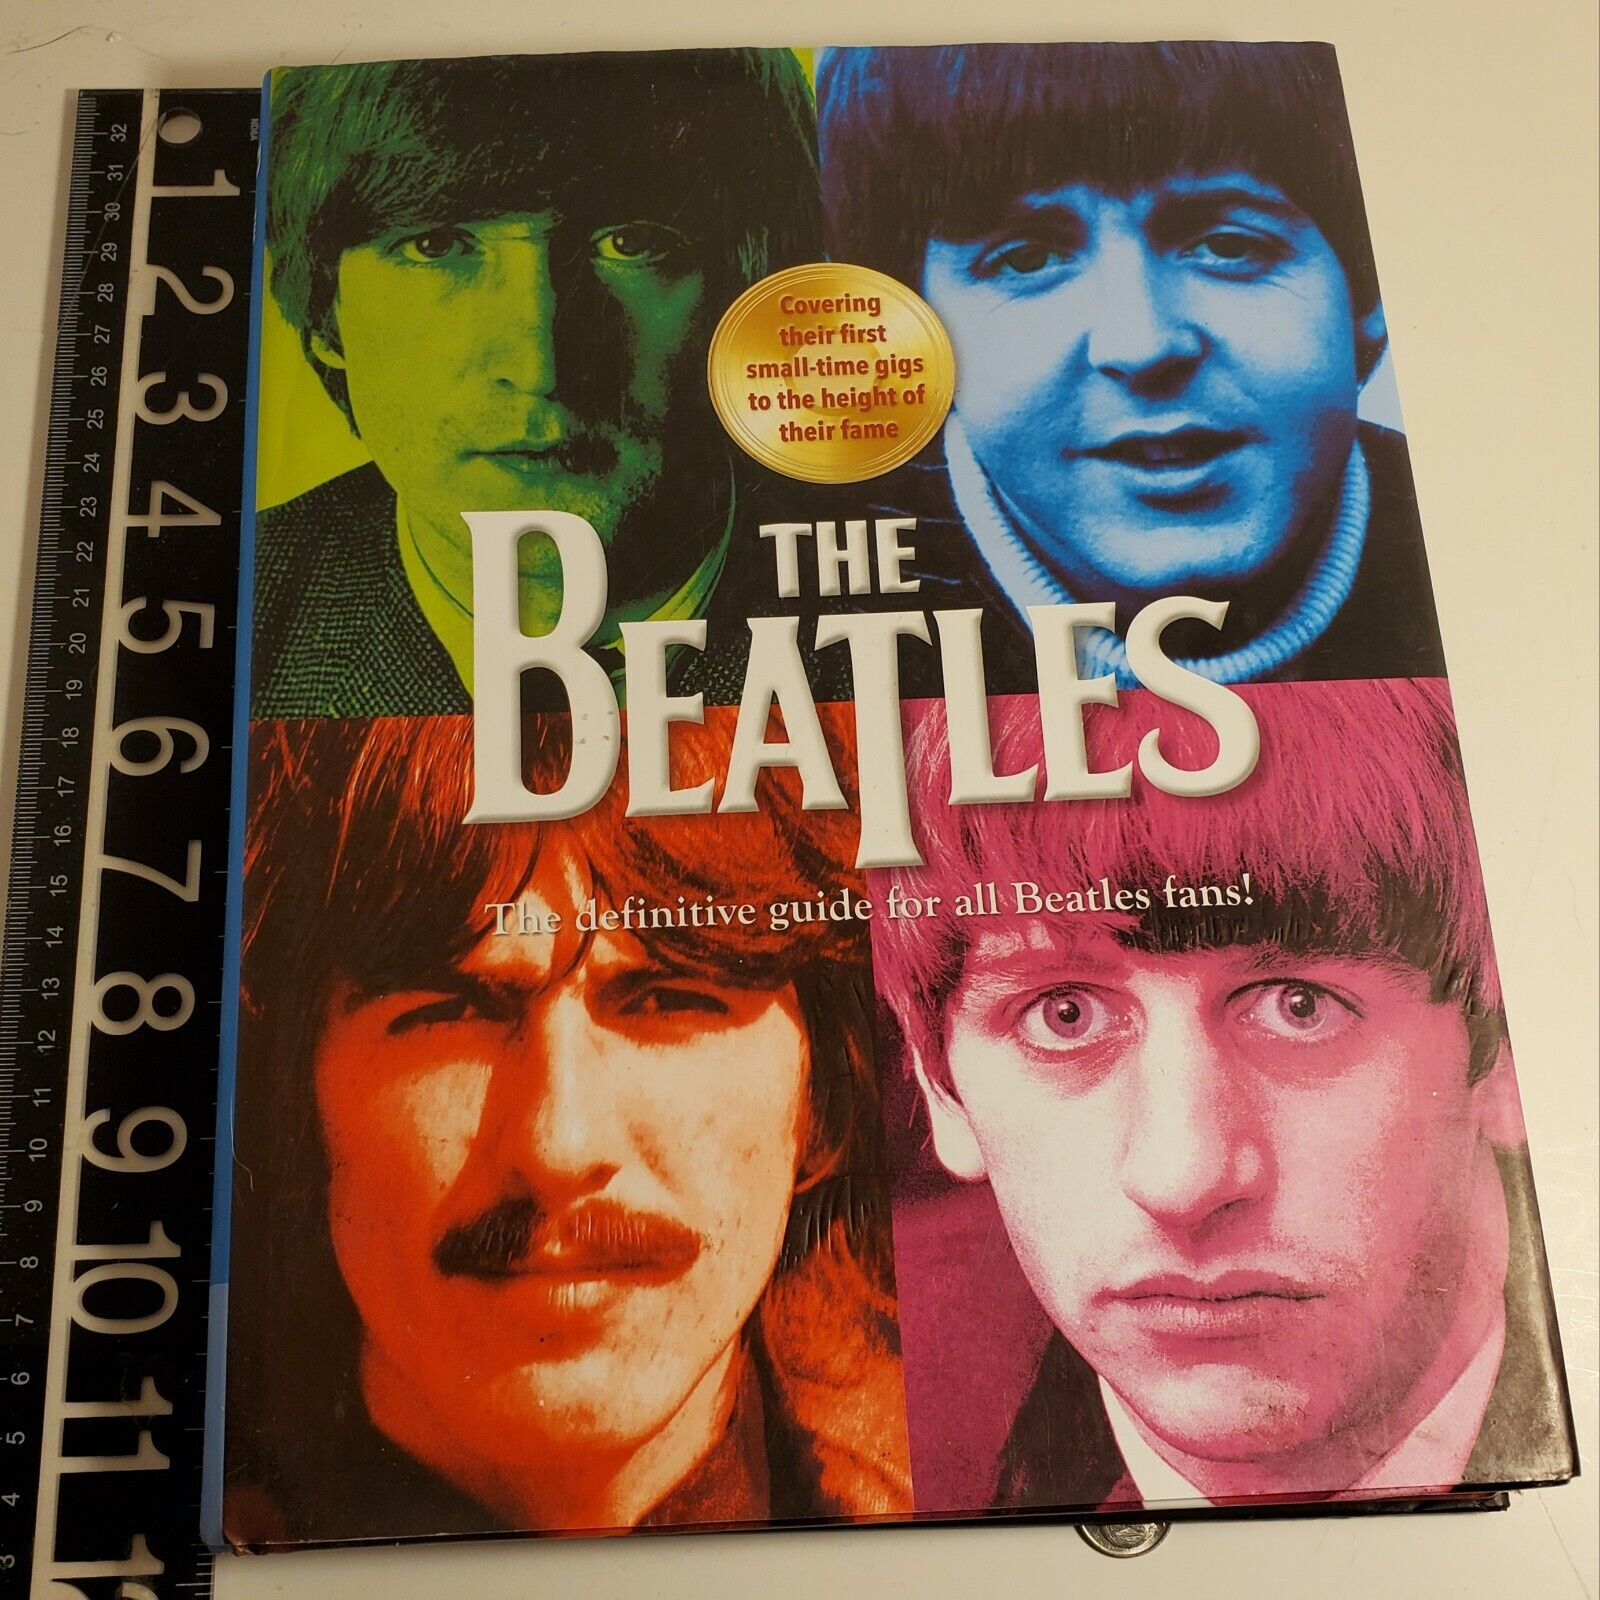 THE BEATLES The Definitive Guide For All Beatles Fans Kim Aitken 2015 Hardcover - $14.99